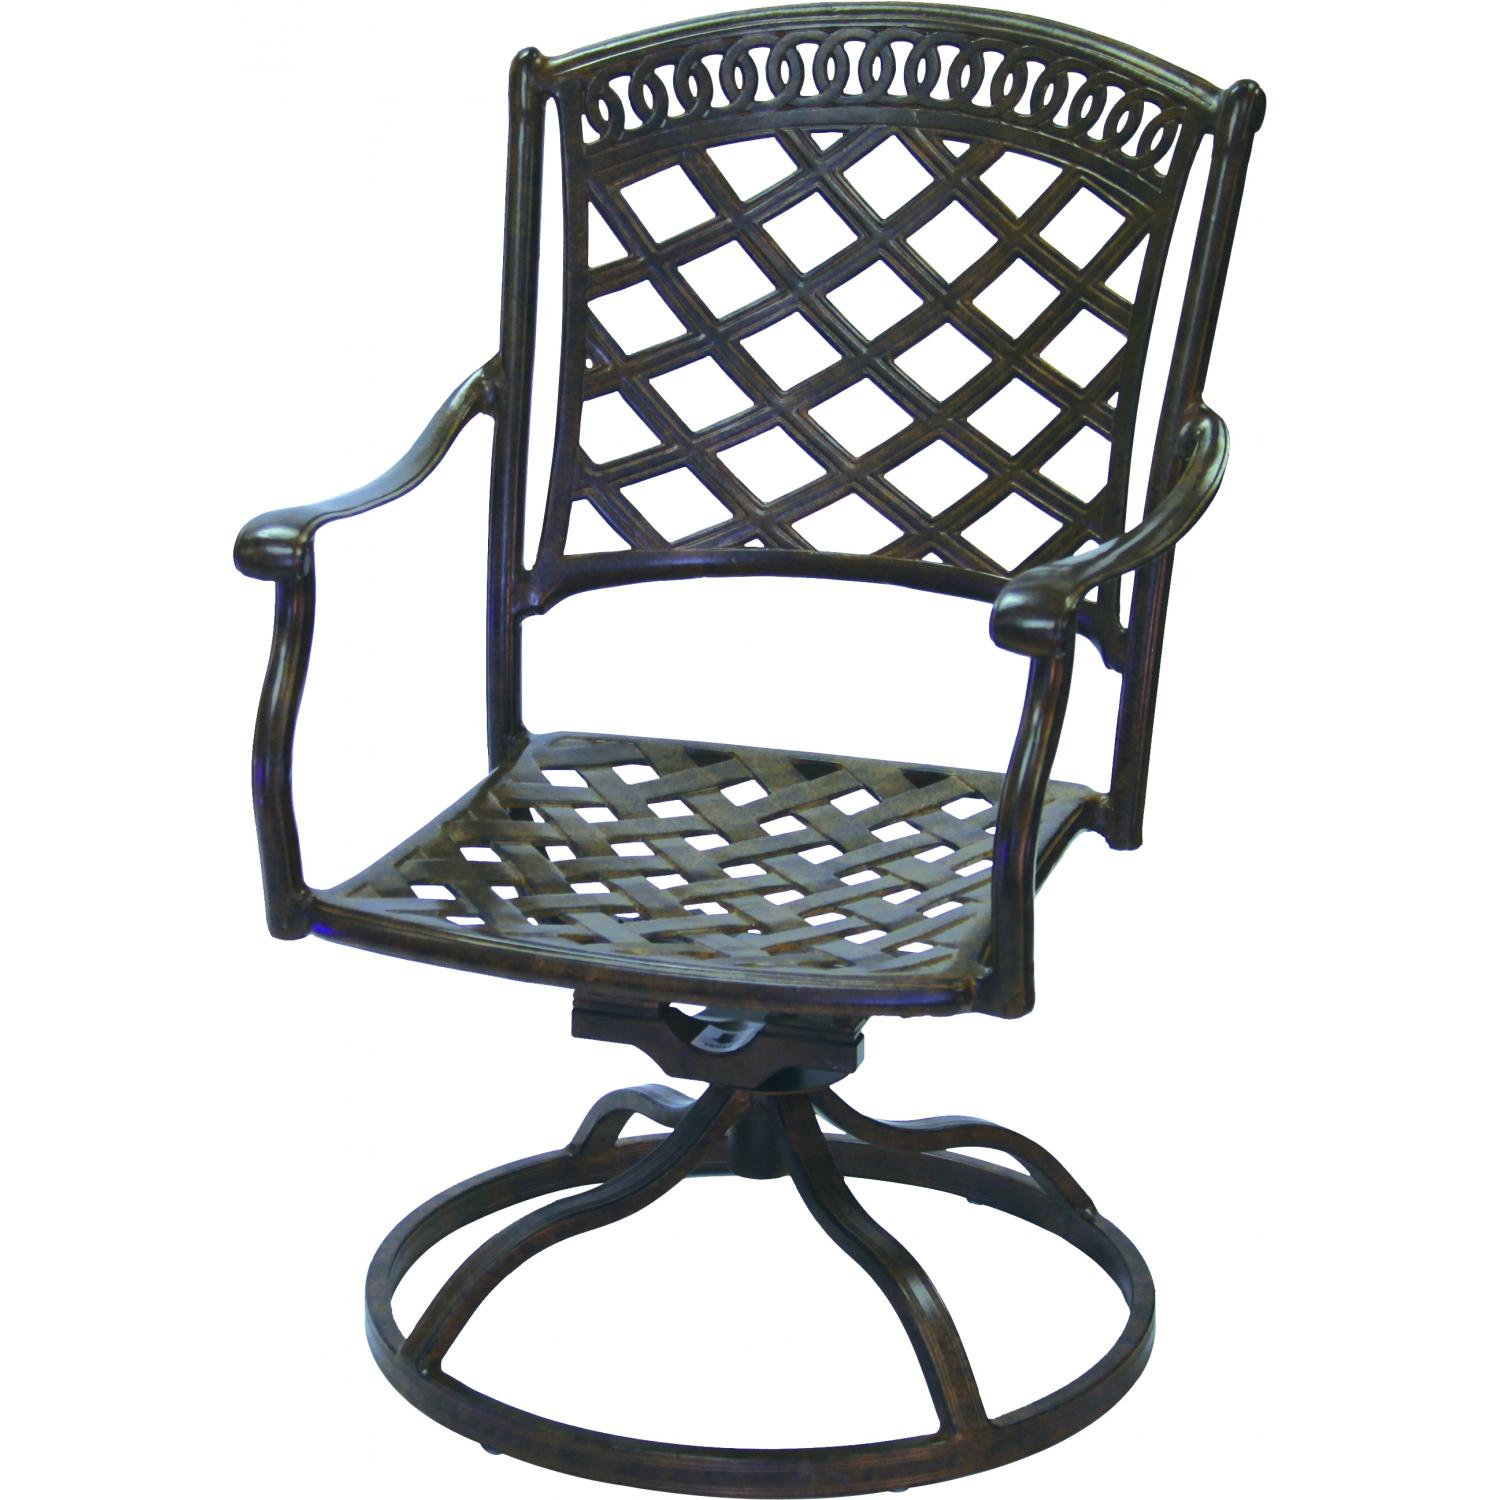 Darlee Sedona Cast Aluminum Patio Swivel Rocker Dining Chair Antique Bronze